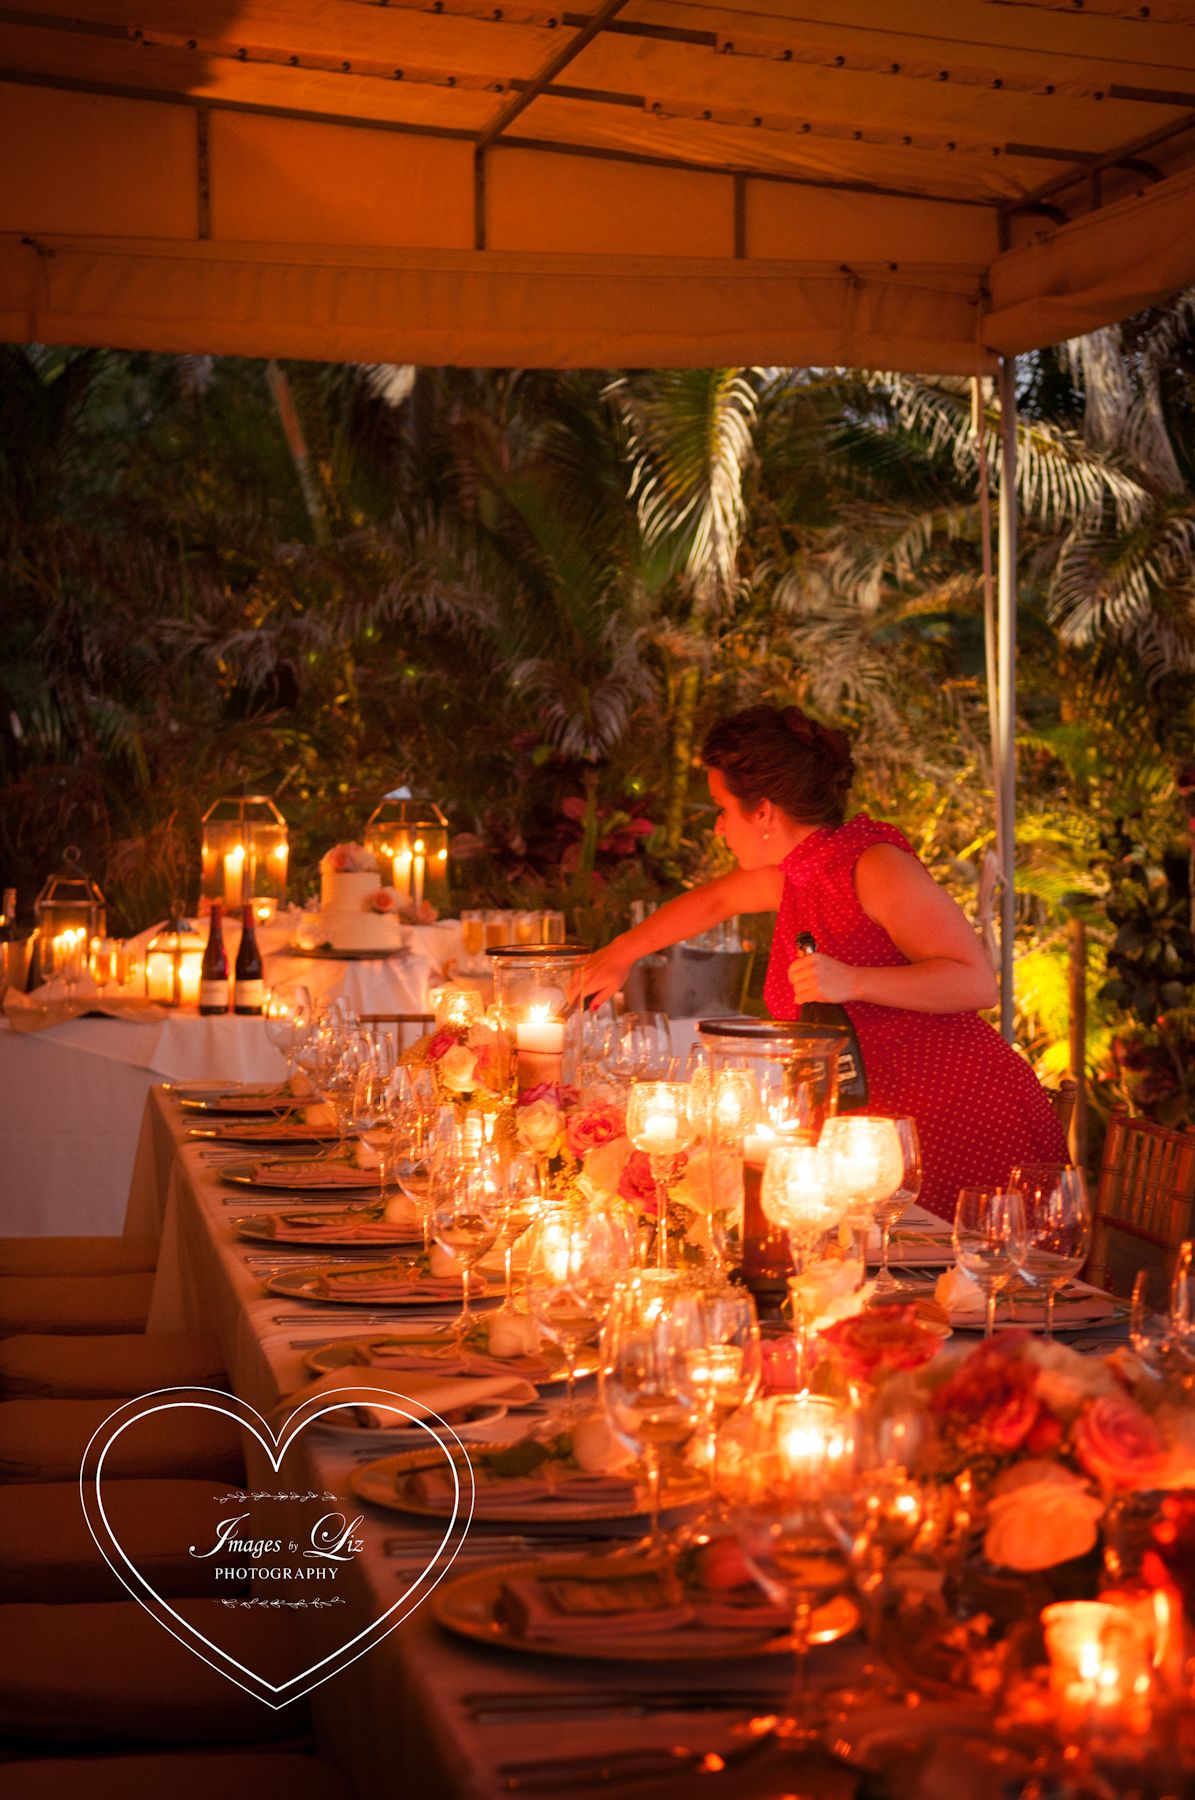 Nicole Freeland Beach House Wedding Extraordinaire Lighting Candles For Her Beautiful Table